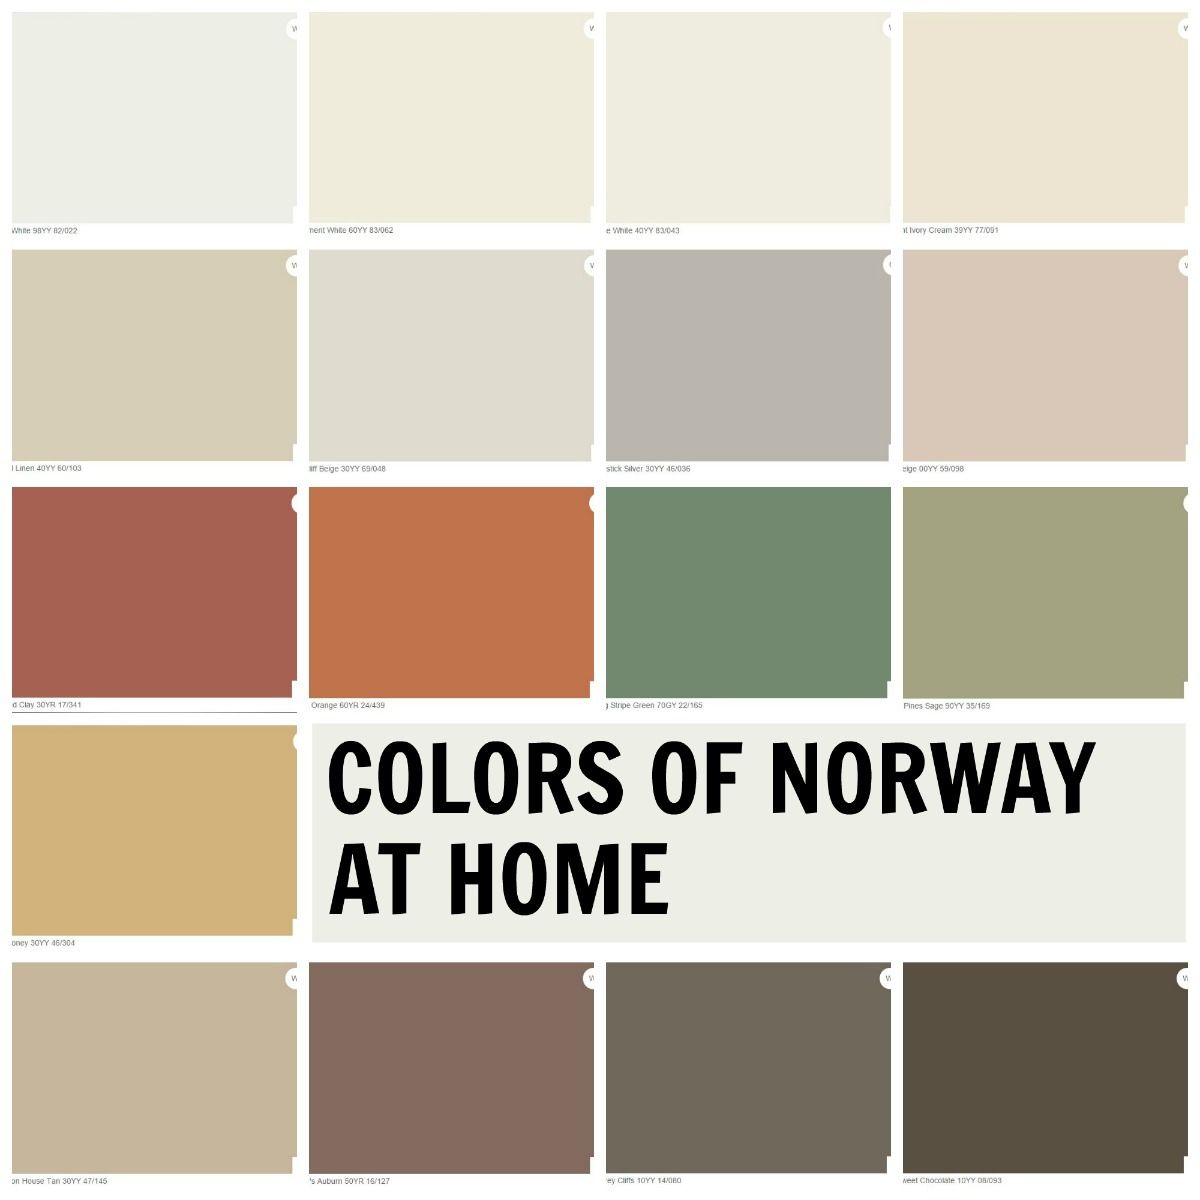 Colors From Norway My Colortopia Home Decor Colors Colorful Interiors Scandinavian Design